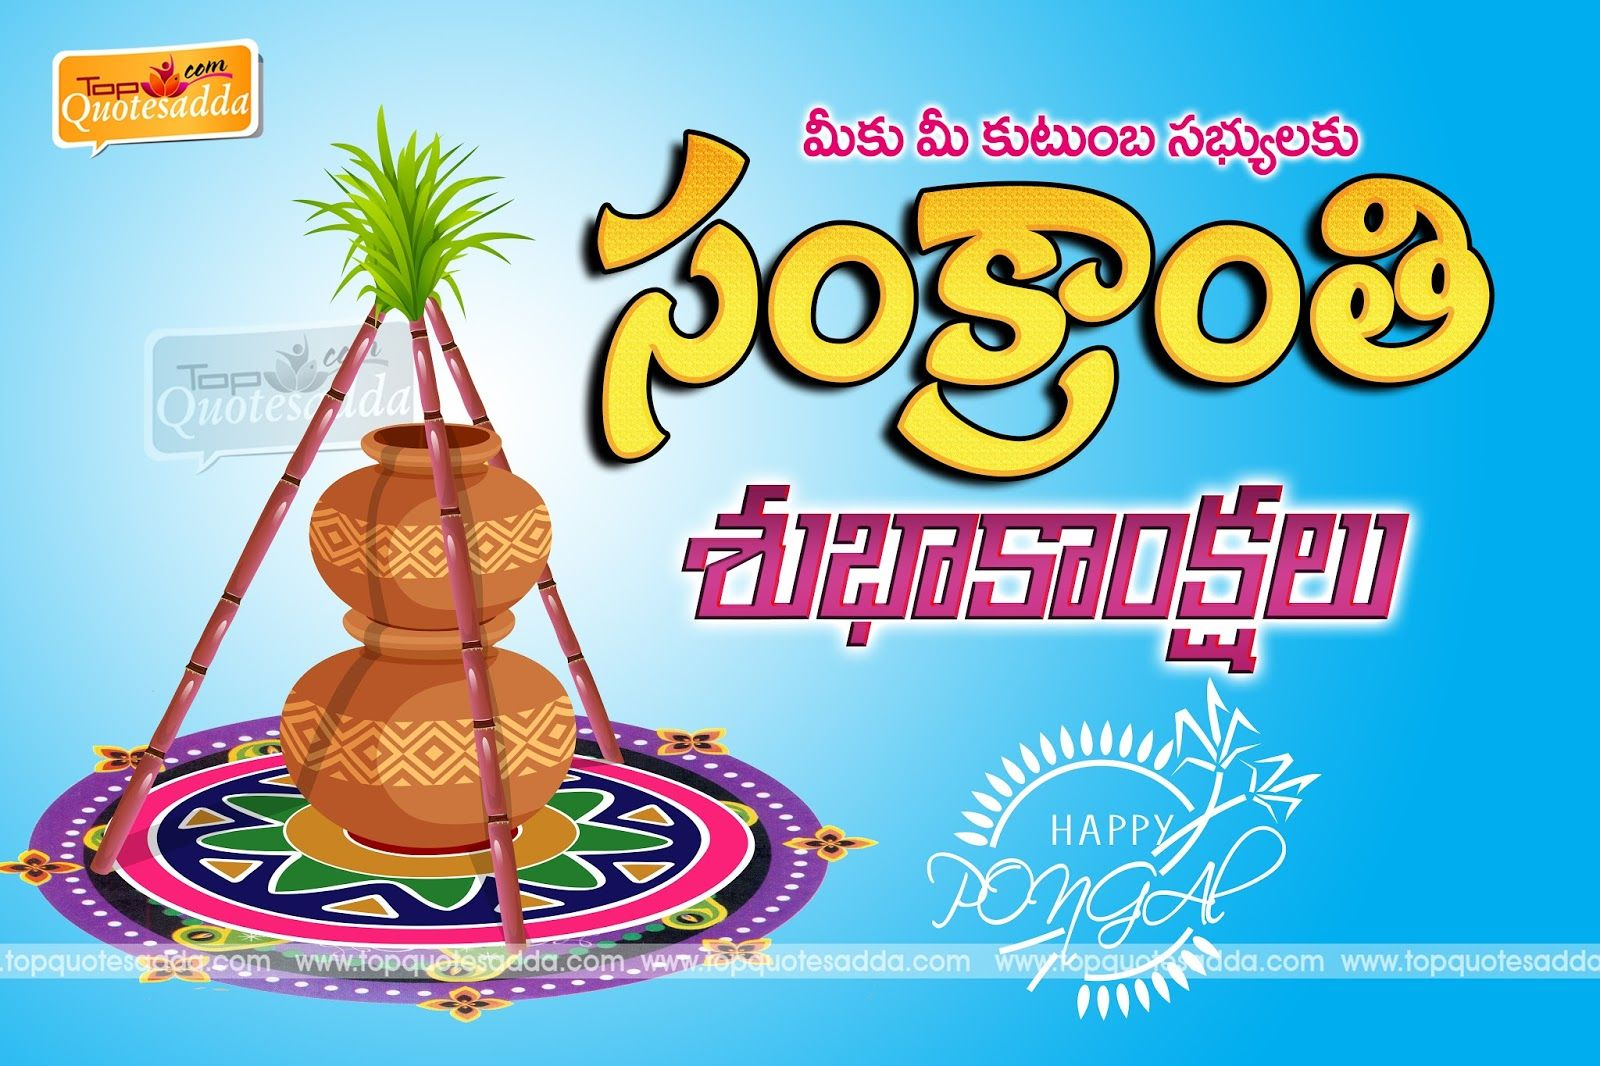 Happy makar sankranti telugu quoteshappy sankranti telugu images happy makar sankranti telugu quoteshappy sankranti telugu imageshappy sankranti greetings in telugu m4hsunfo